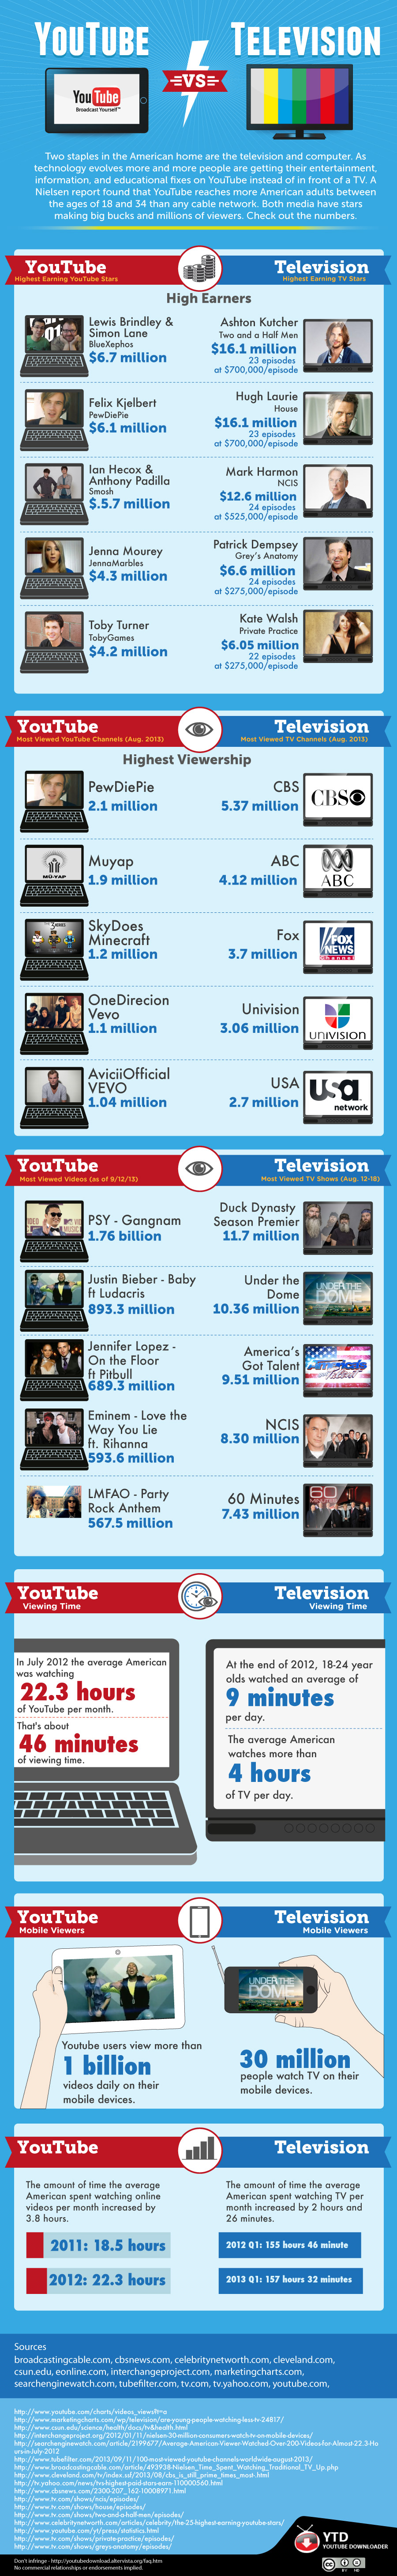 YouTube versus TV